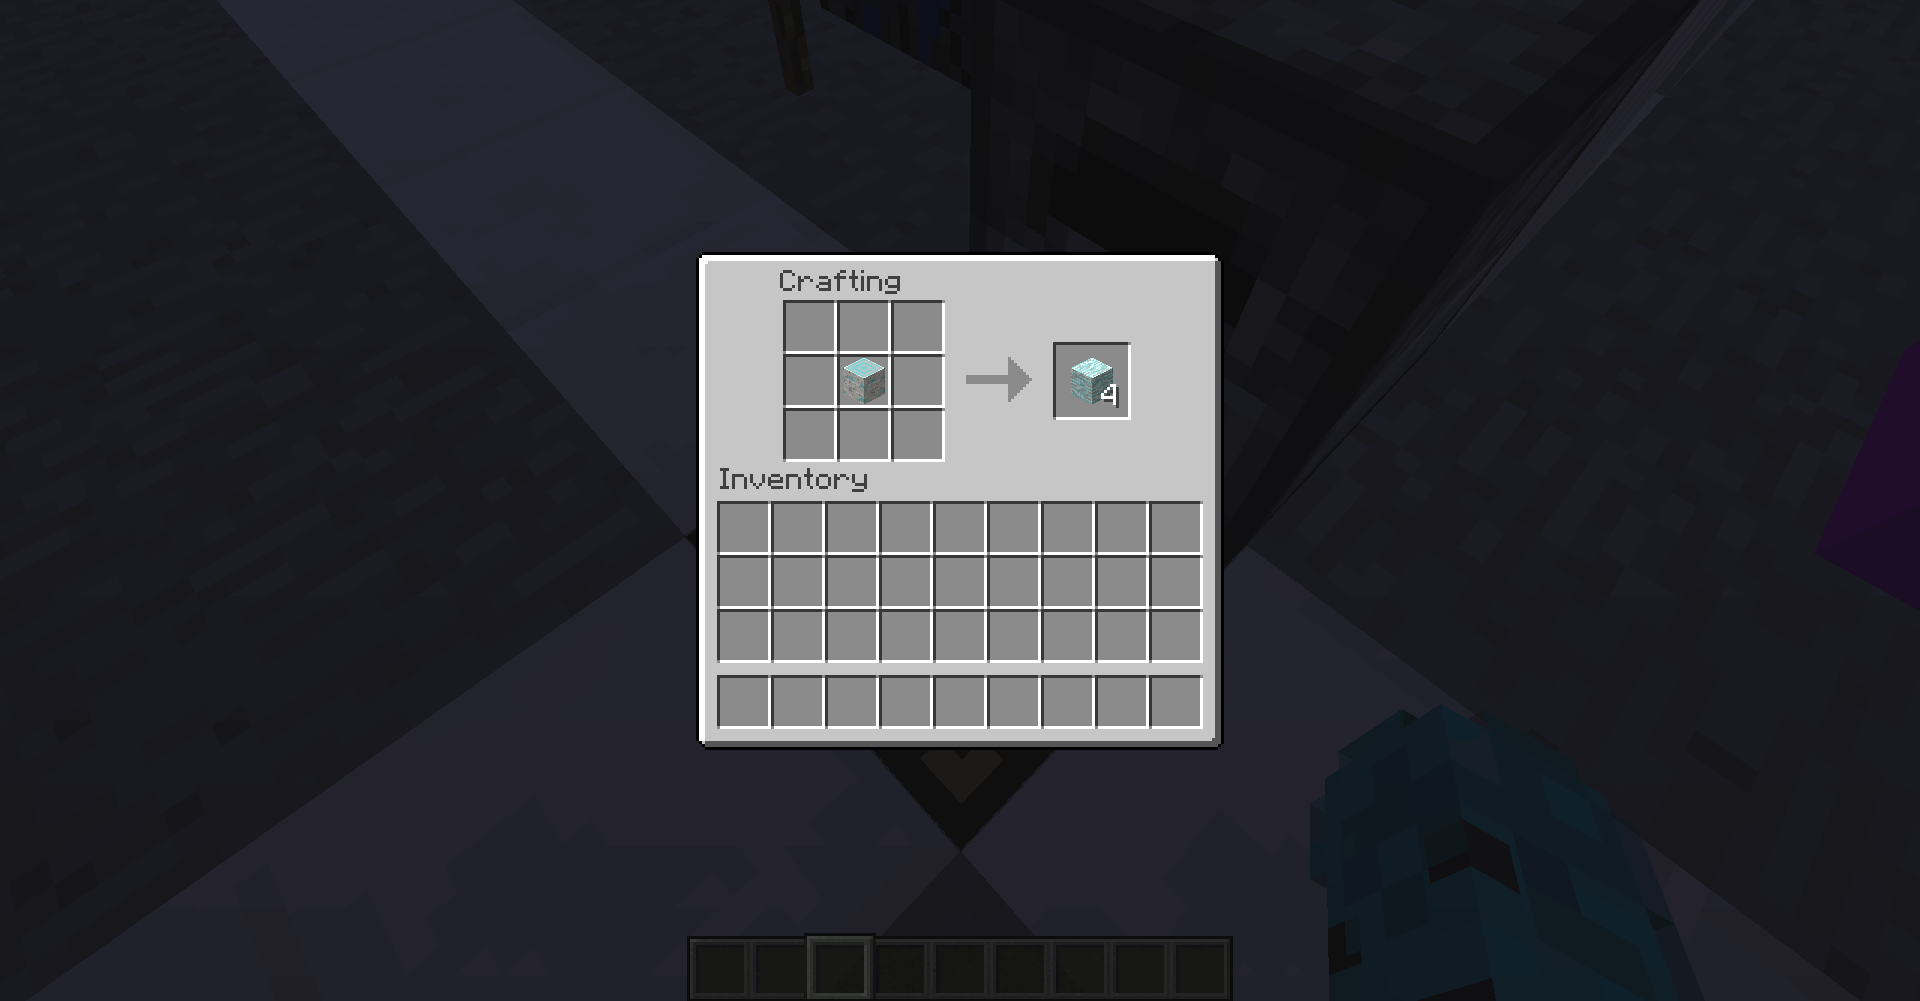 heaven-and-hell-mod-crafting-recipes-1.png